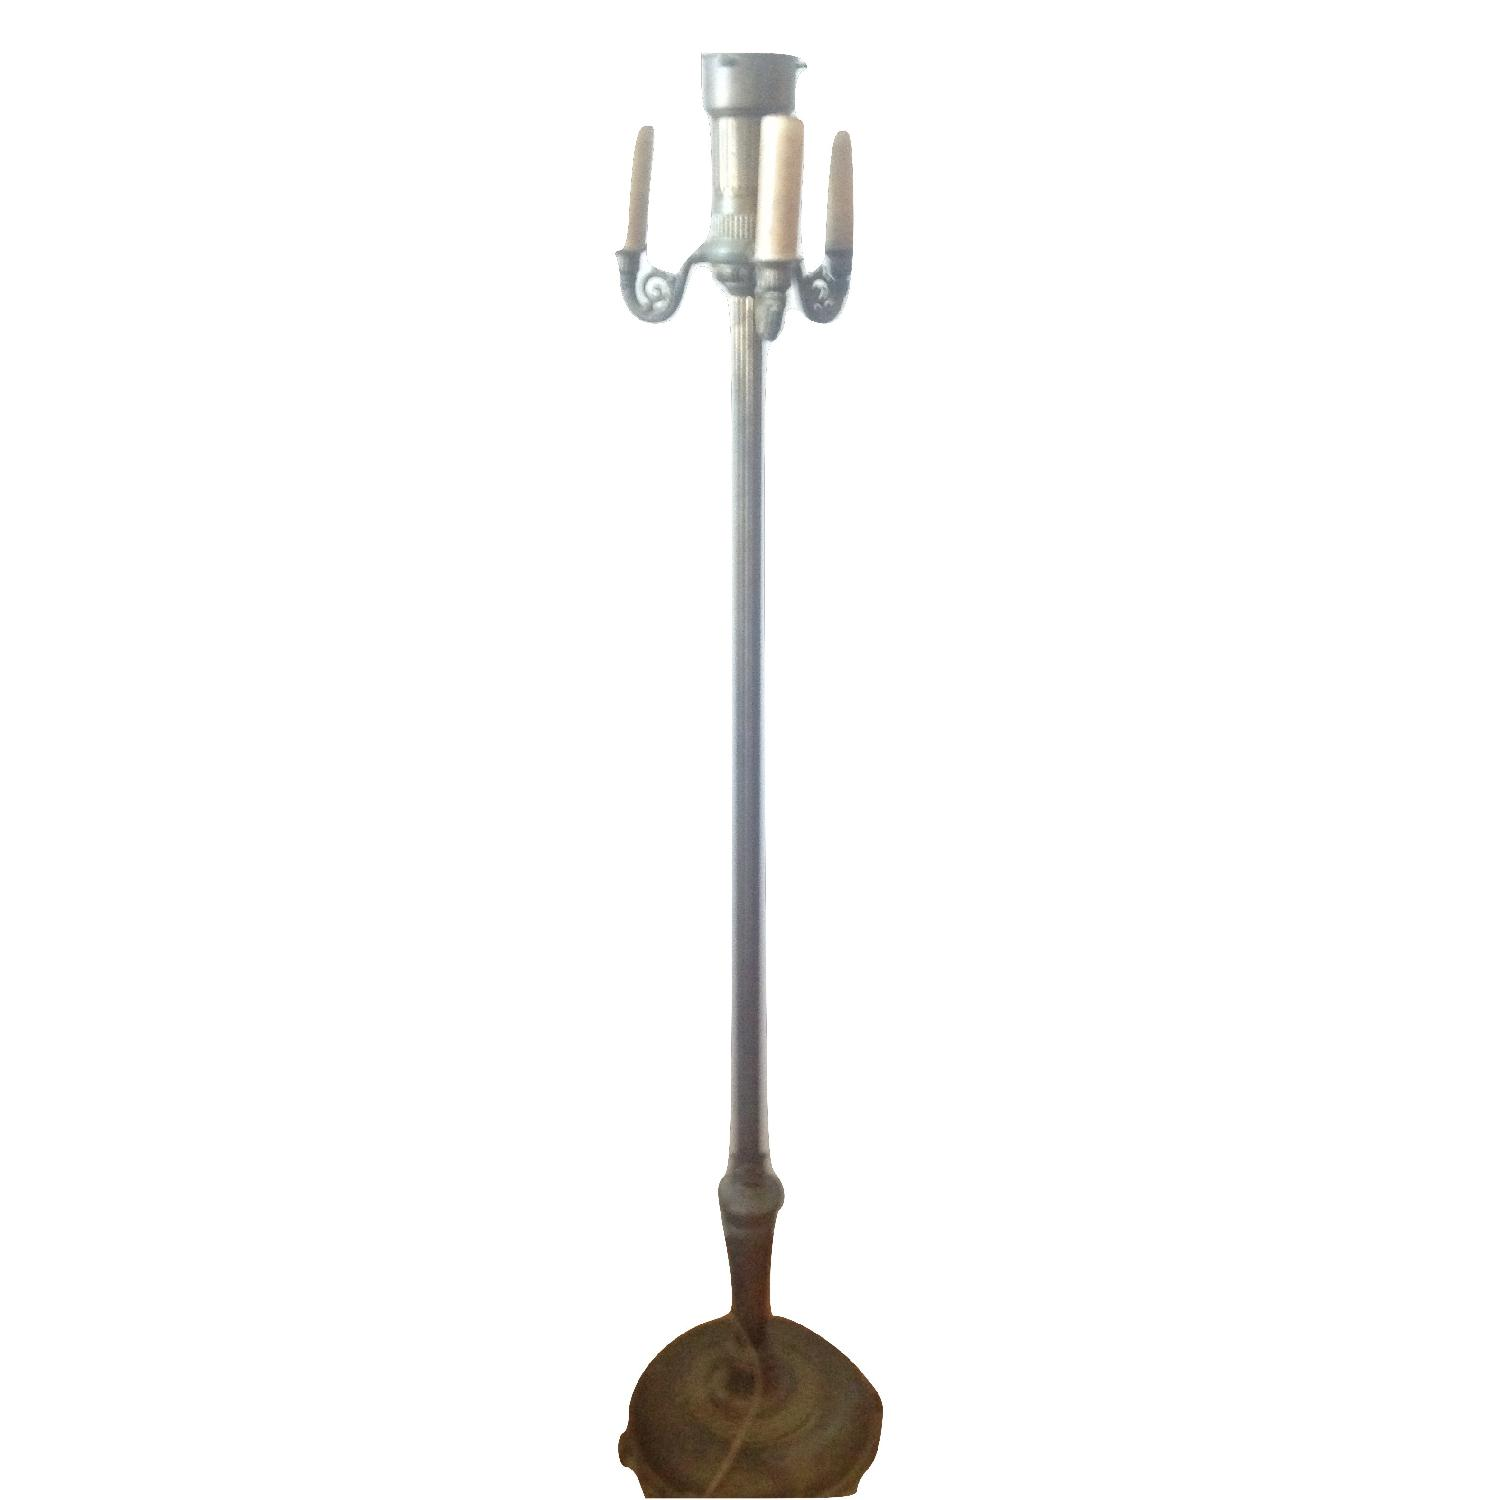 Antique candelabra floor lamp metal and wood something